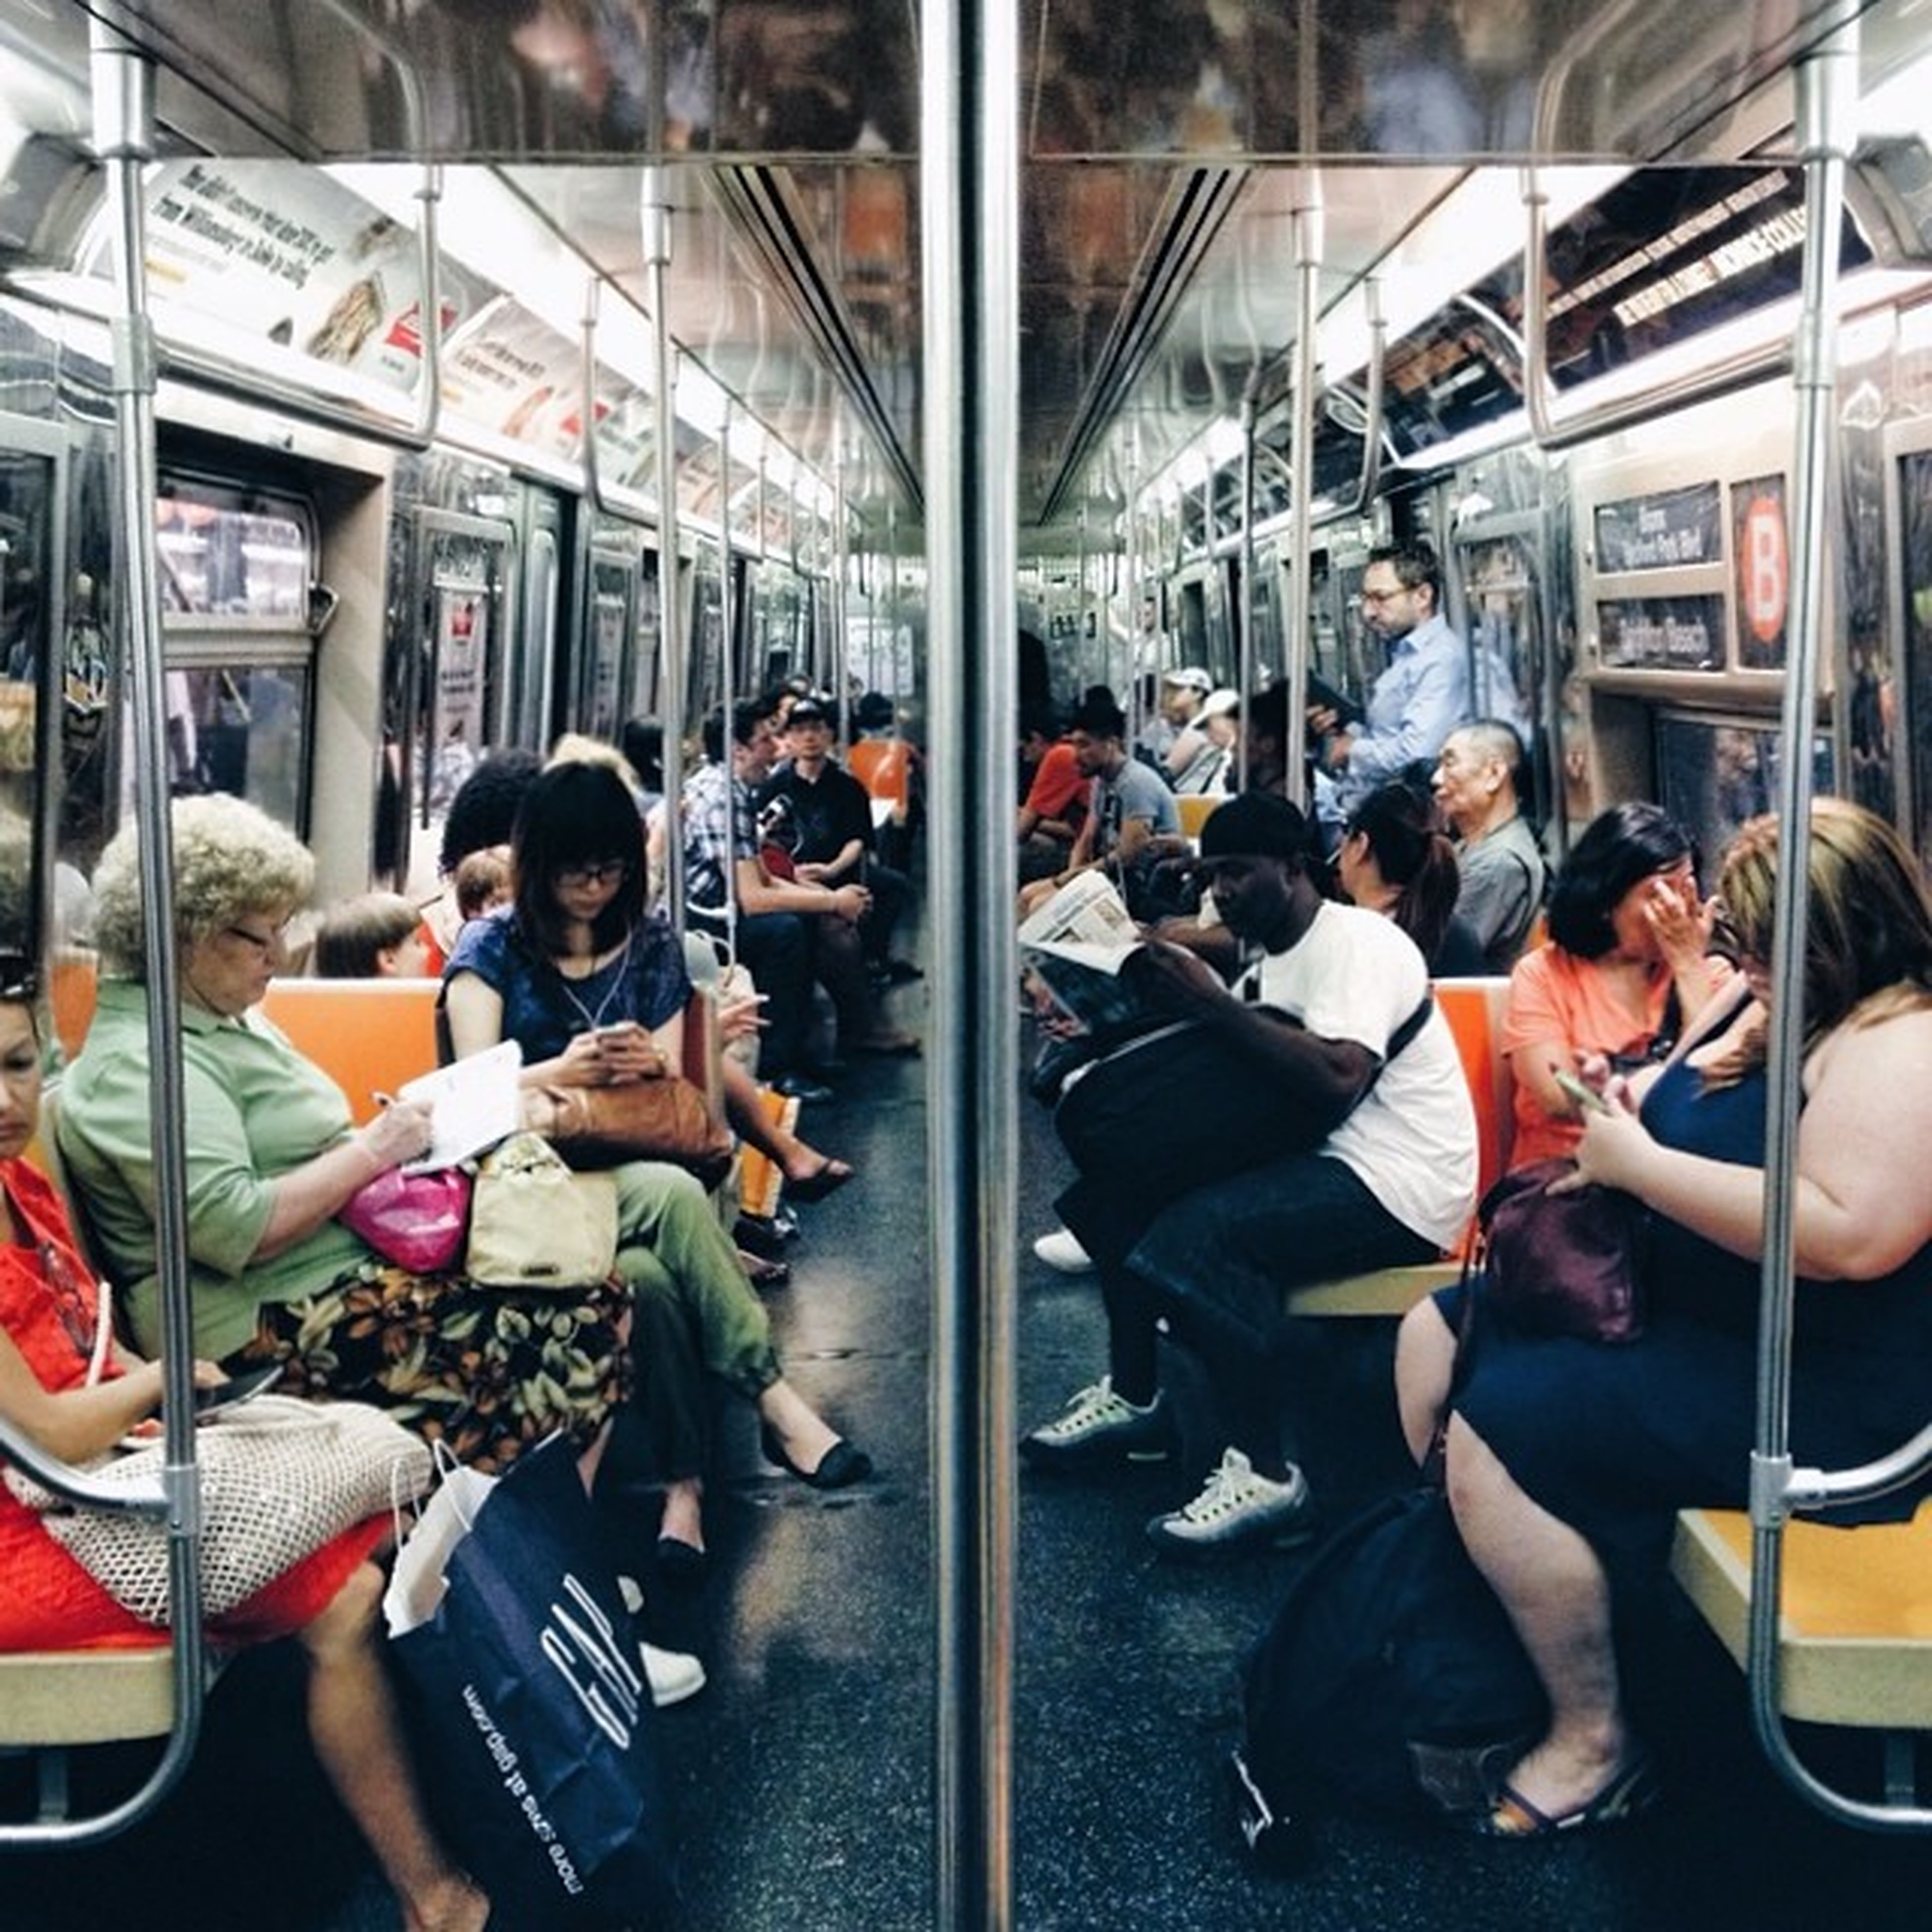 lifestyles, person, leisure activity, men, large group of people, transportation, sitting, mode of transport, indoors, casual clothing, travel, city life, medium group of people, vehicle interior, public transportation, passenger, togetherness, window, standing